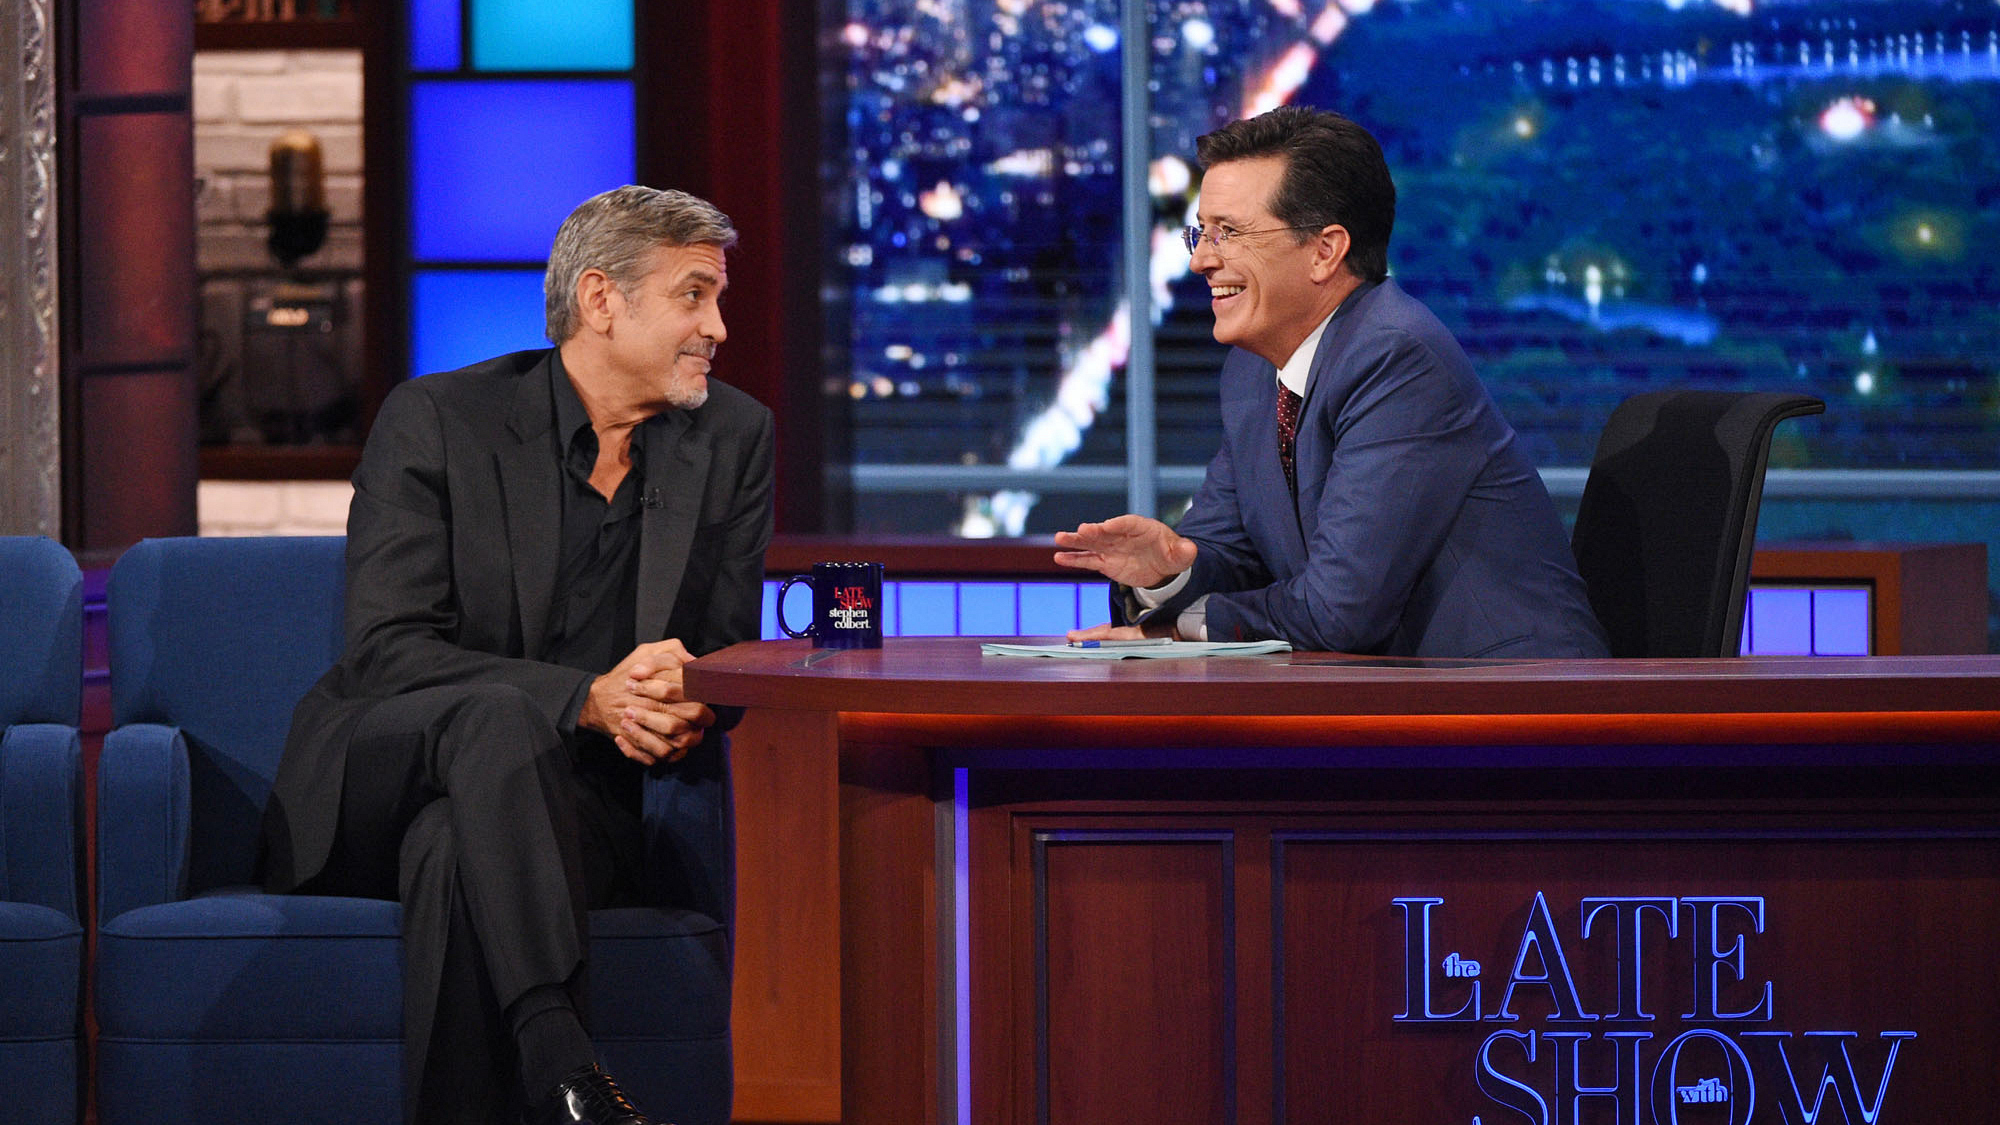 George Clooney and Stephen Colbert